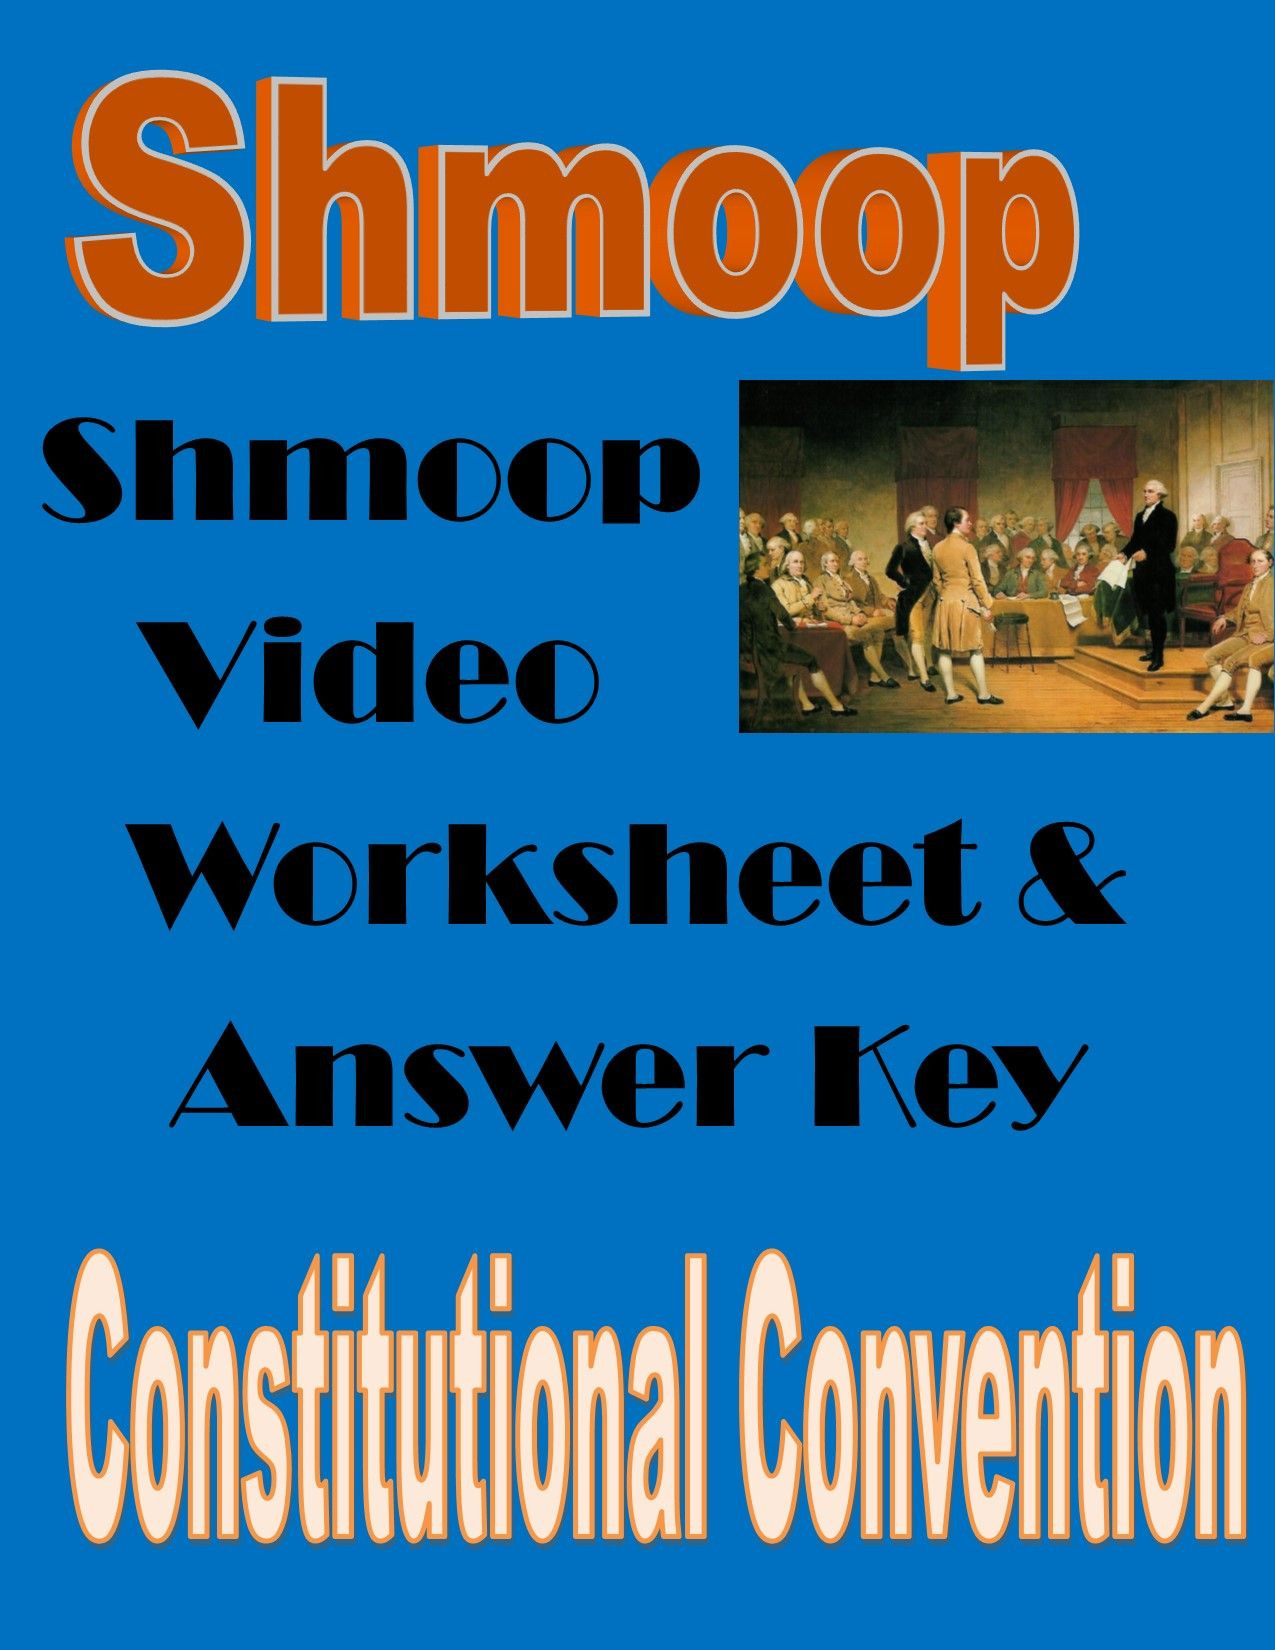 The Constitutional Convention Worksheet